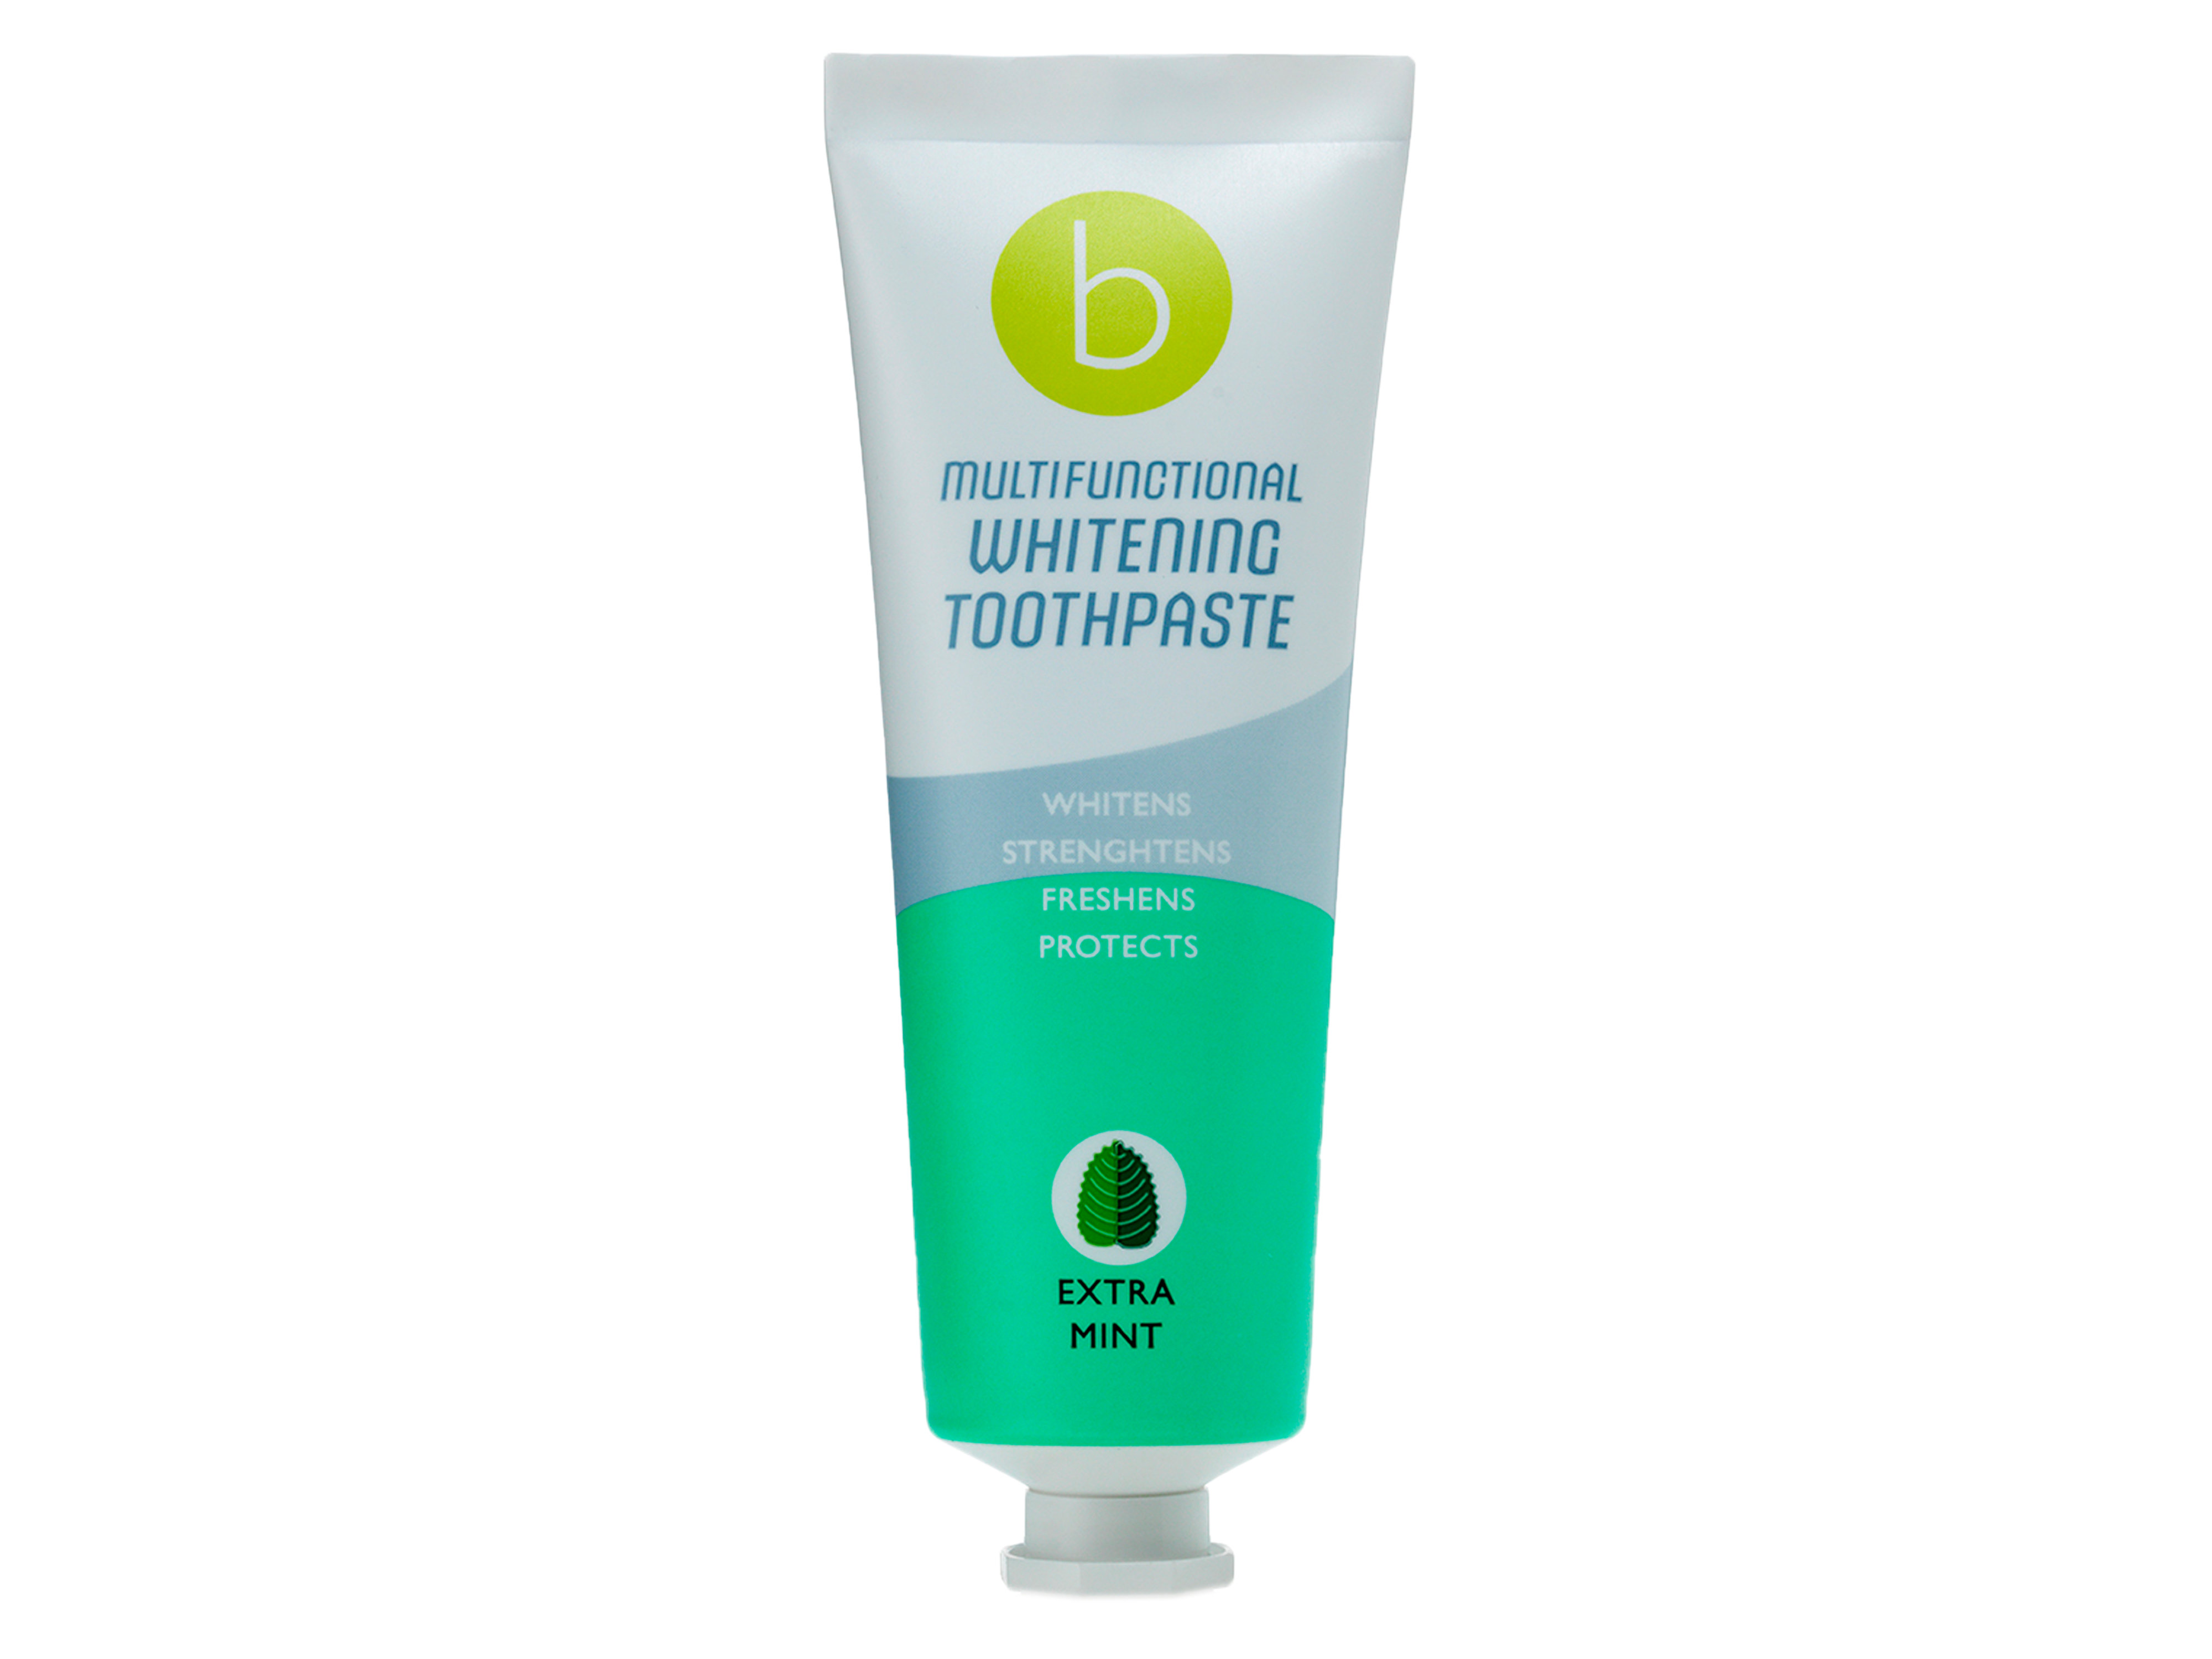 Beconfident Multifunctional  Whitening Toothpaste, med smak av Extra Mint, 75 ml